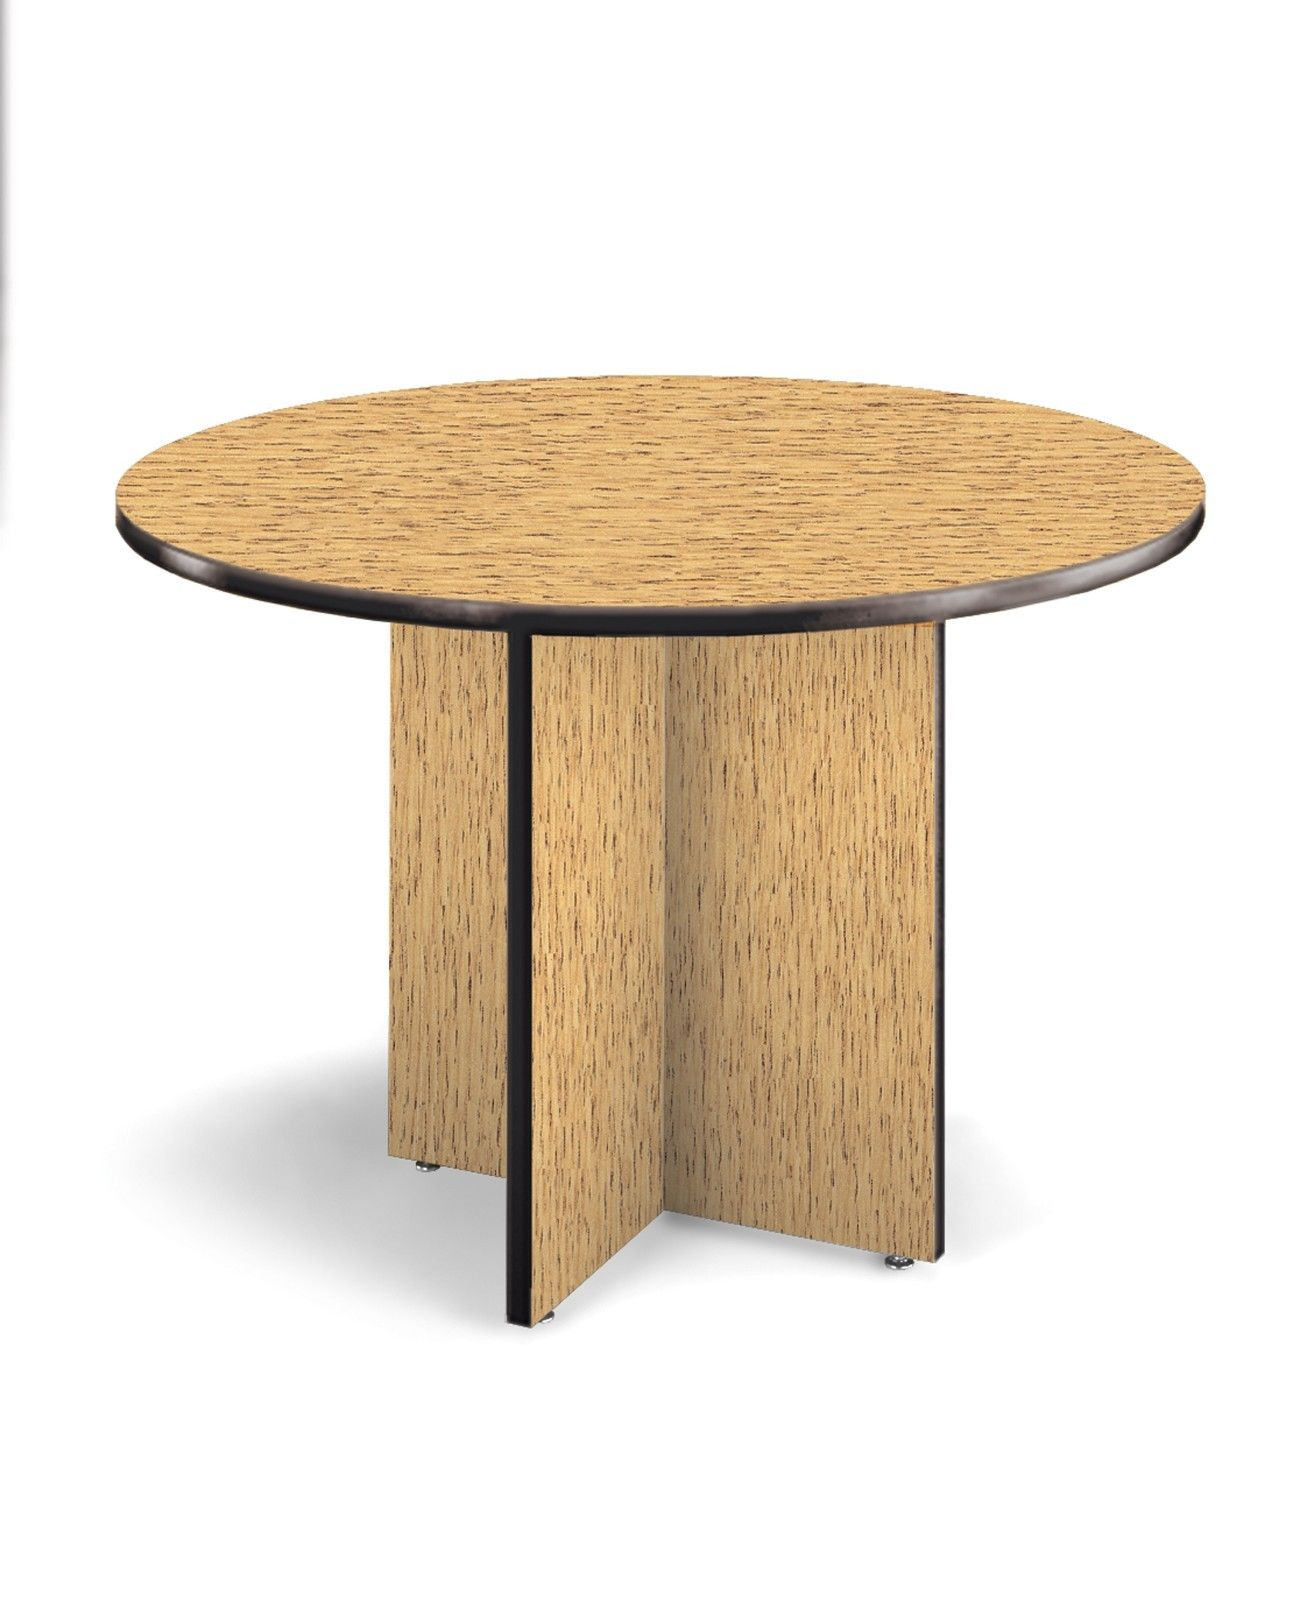 "#21 - 42"" Round Conference Table with High-Pressure Laminate Surface and Oak Finish"